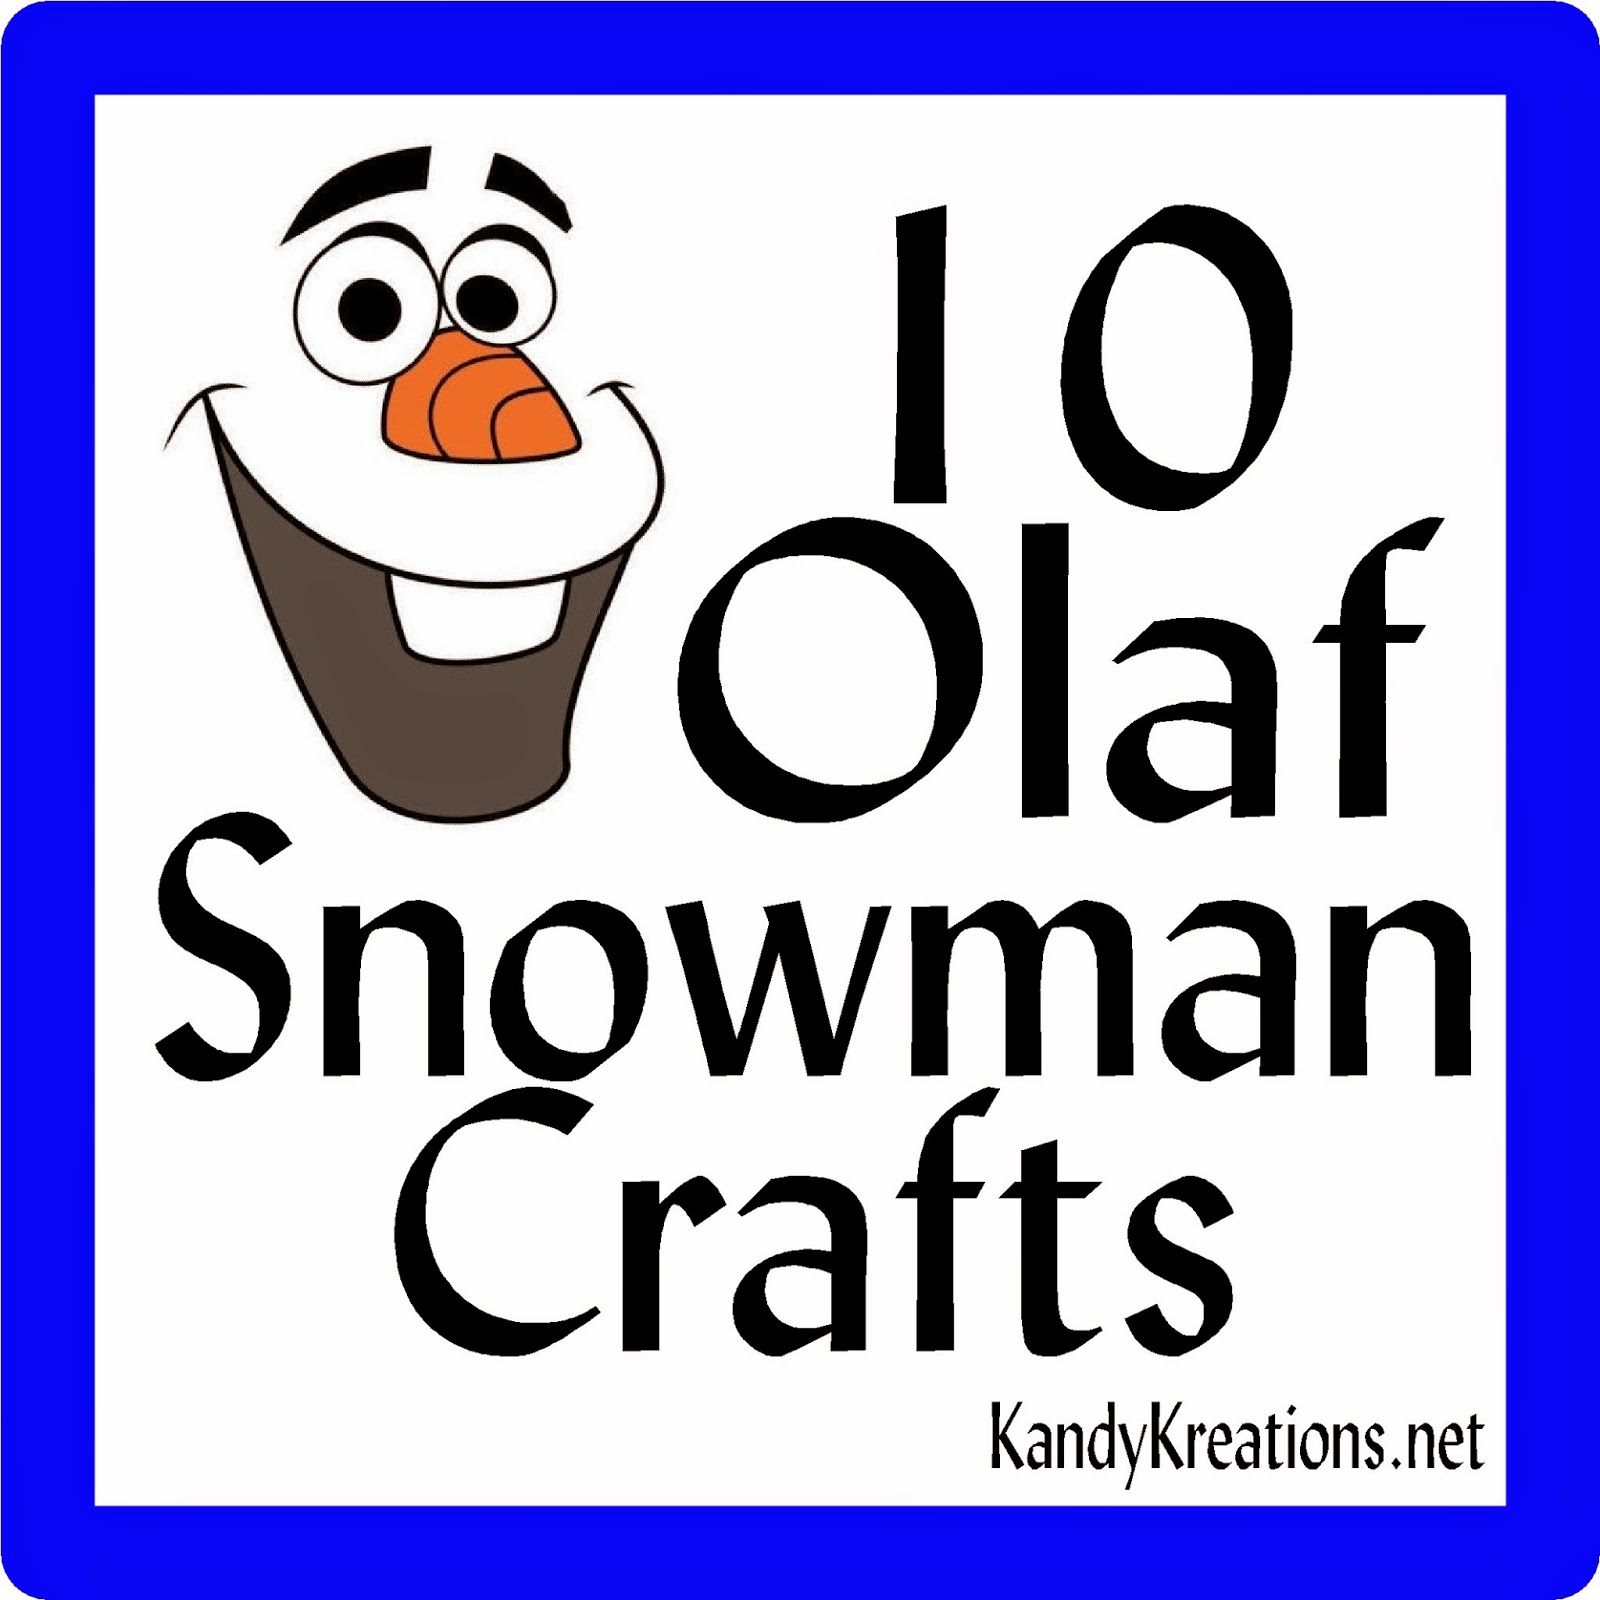 Everyone's favorite snowman, Olaf the Snowman is here with 10 fun crafts that you can make for your Frozen birthday party.  Find out how to make a Snowman Treat jar, a chocolate pretzel craft, a Olaf Night light, and more.